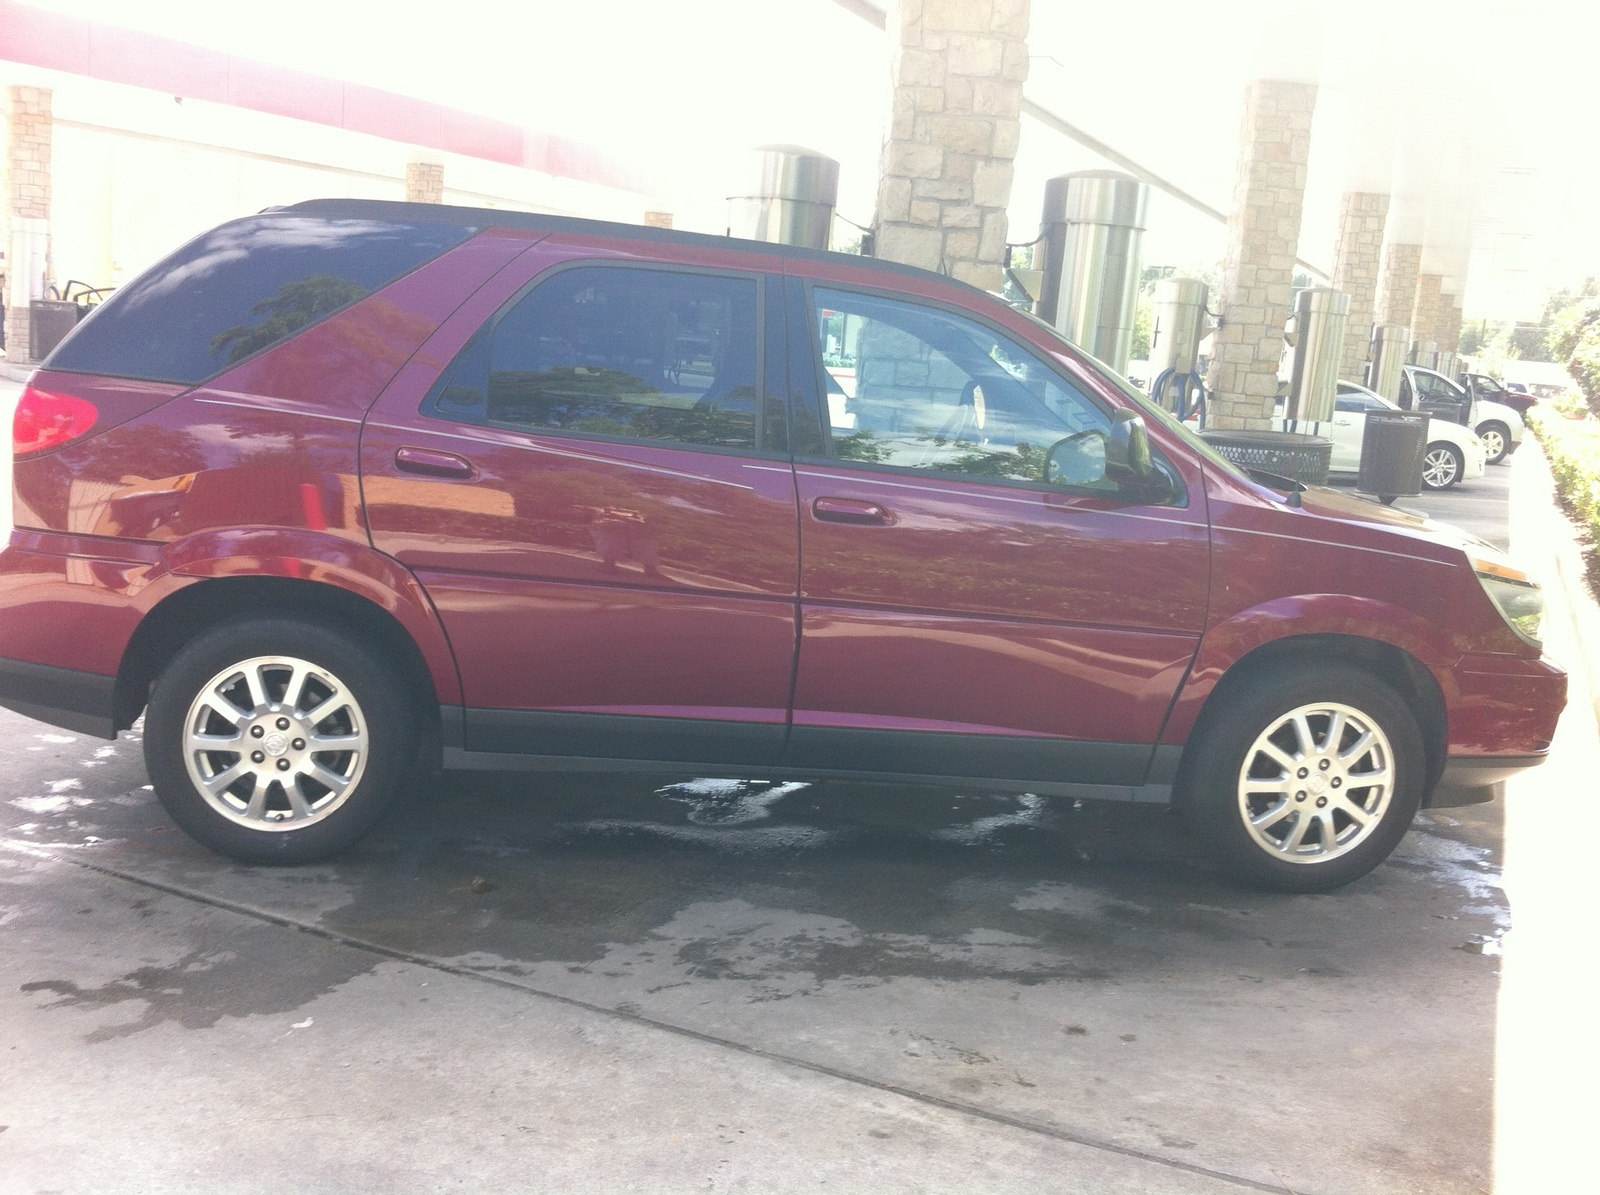 2007 Buick Rendezvous - Overview